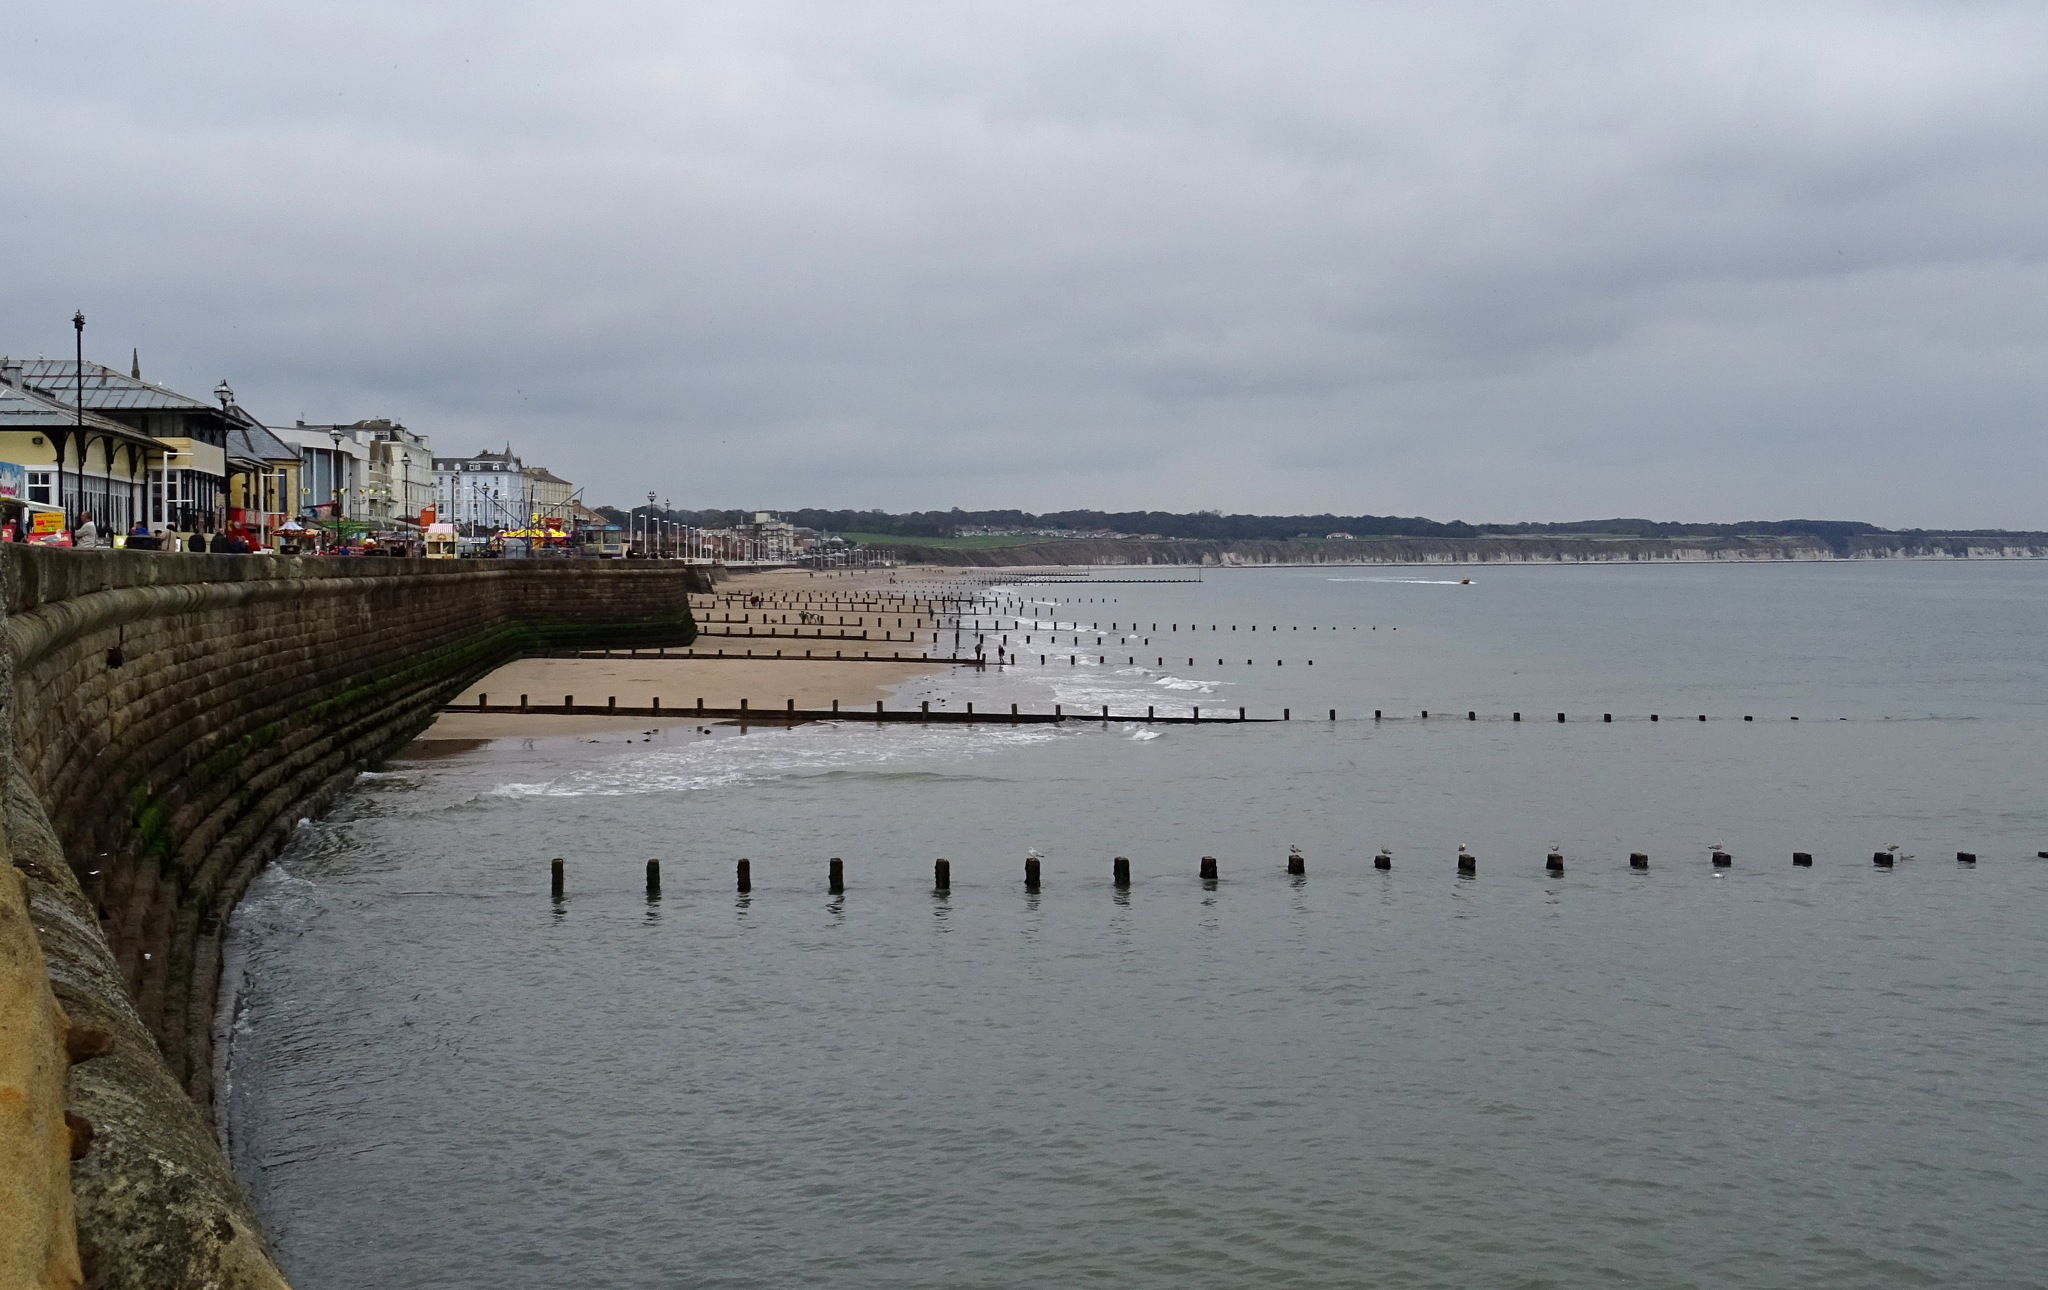 Incoming Tide by kayThornton